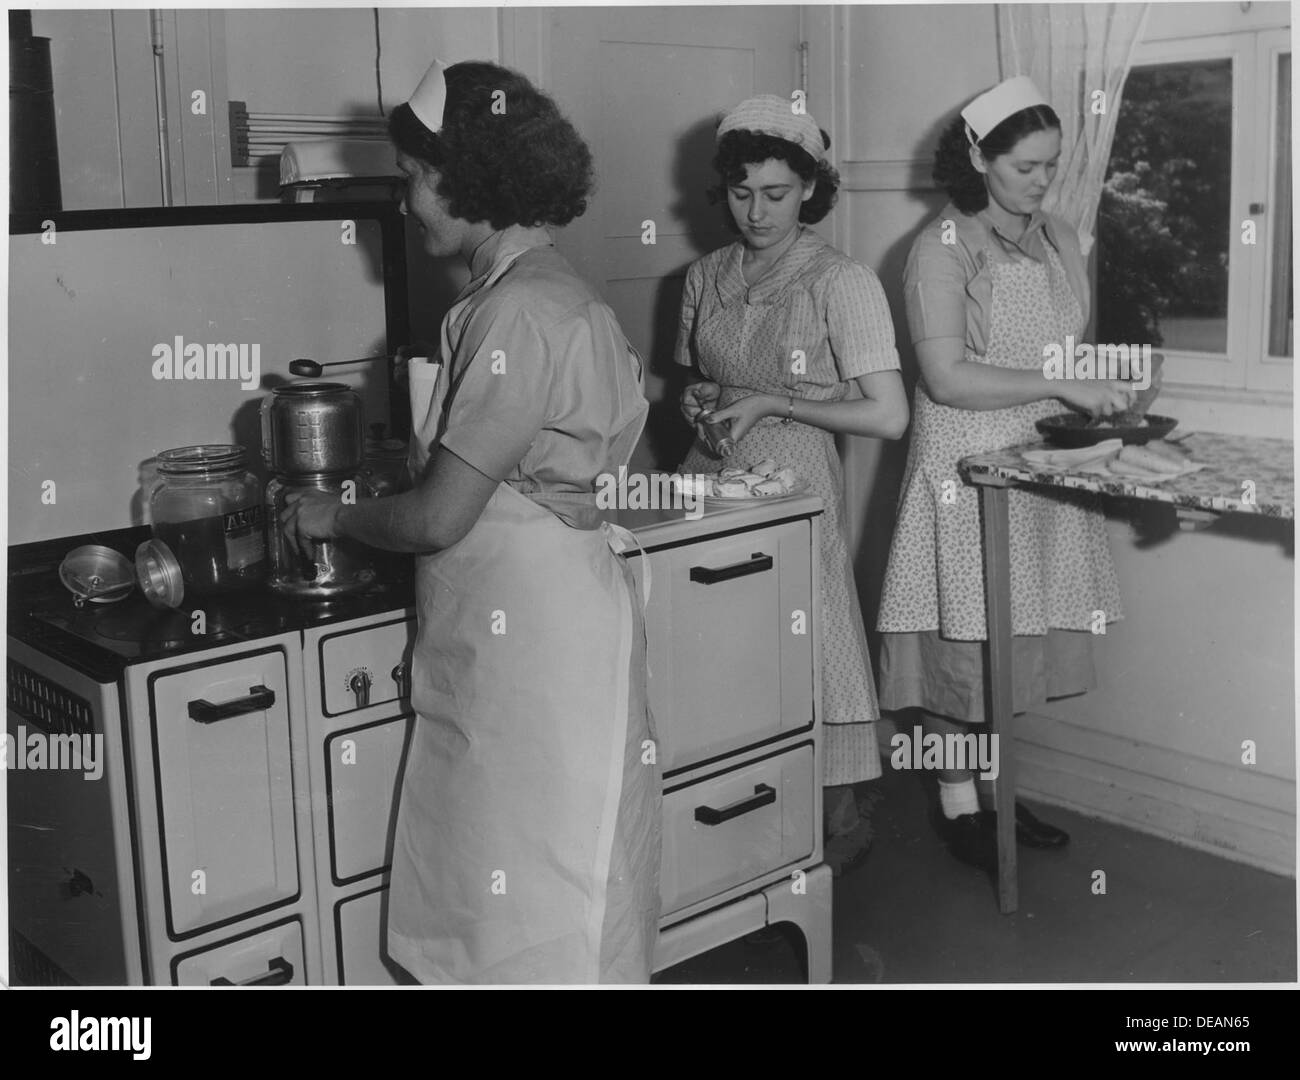 Photograph, WP 10688, OP 5E665 08 3 169, Household Workers Training Project, San Jose, California (Cooking). 296100 - Stock Image